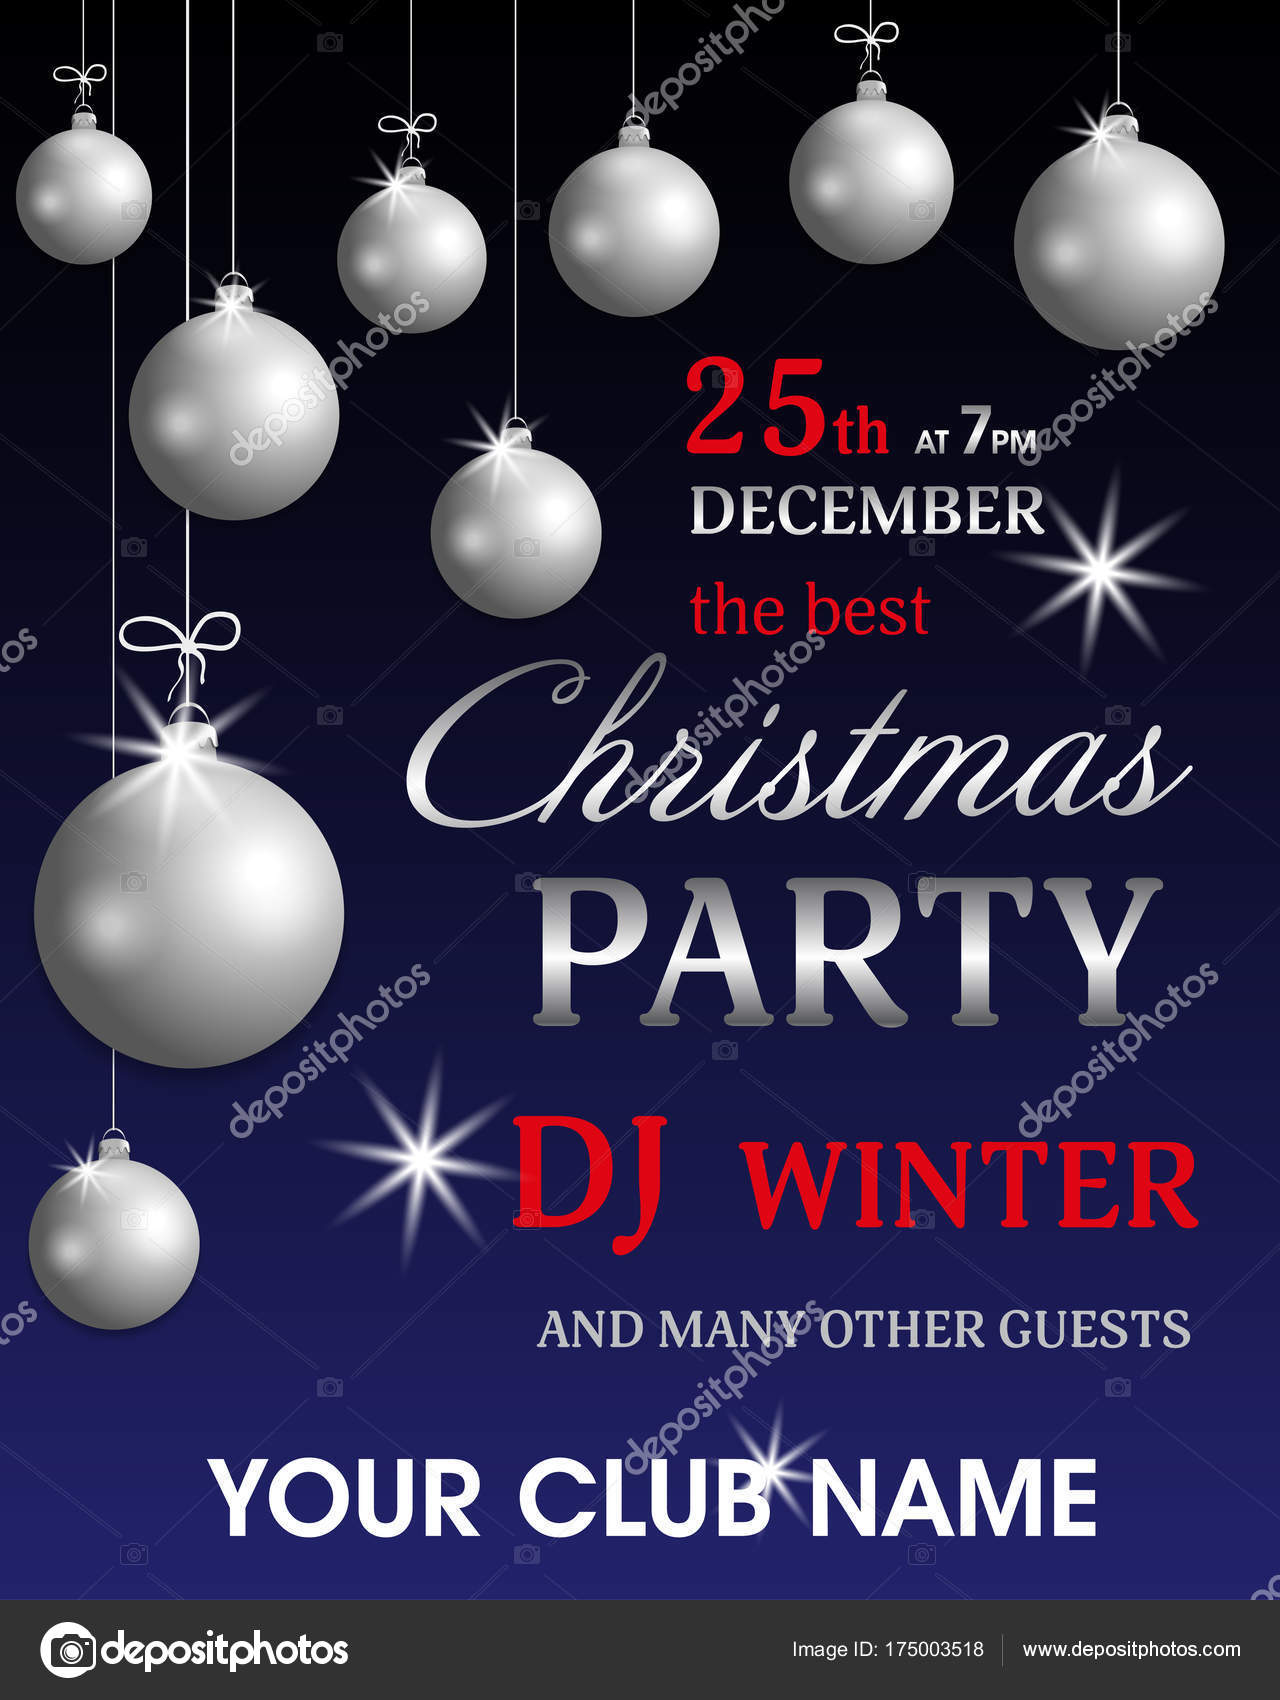 template poster invitation christmas party and new year with silver balls holidays flyer design